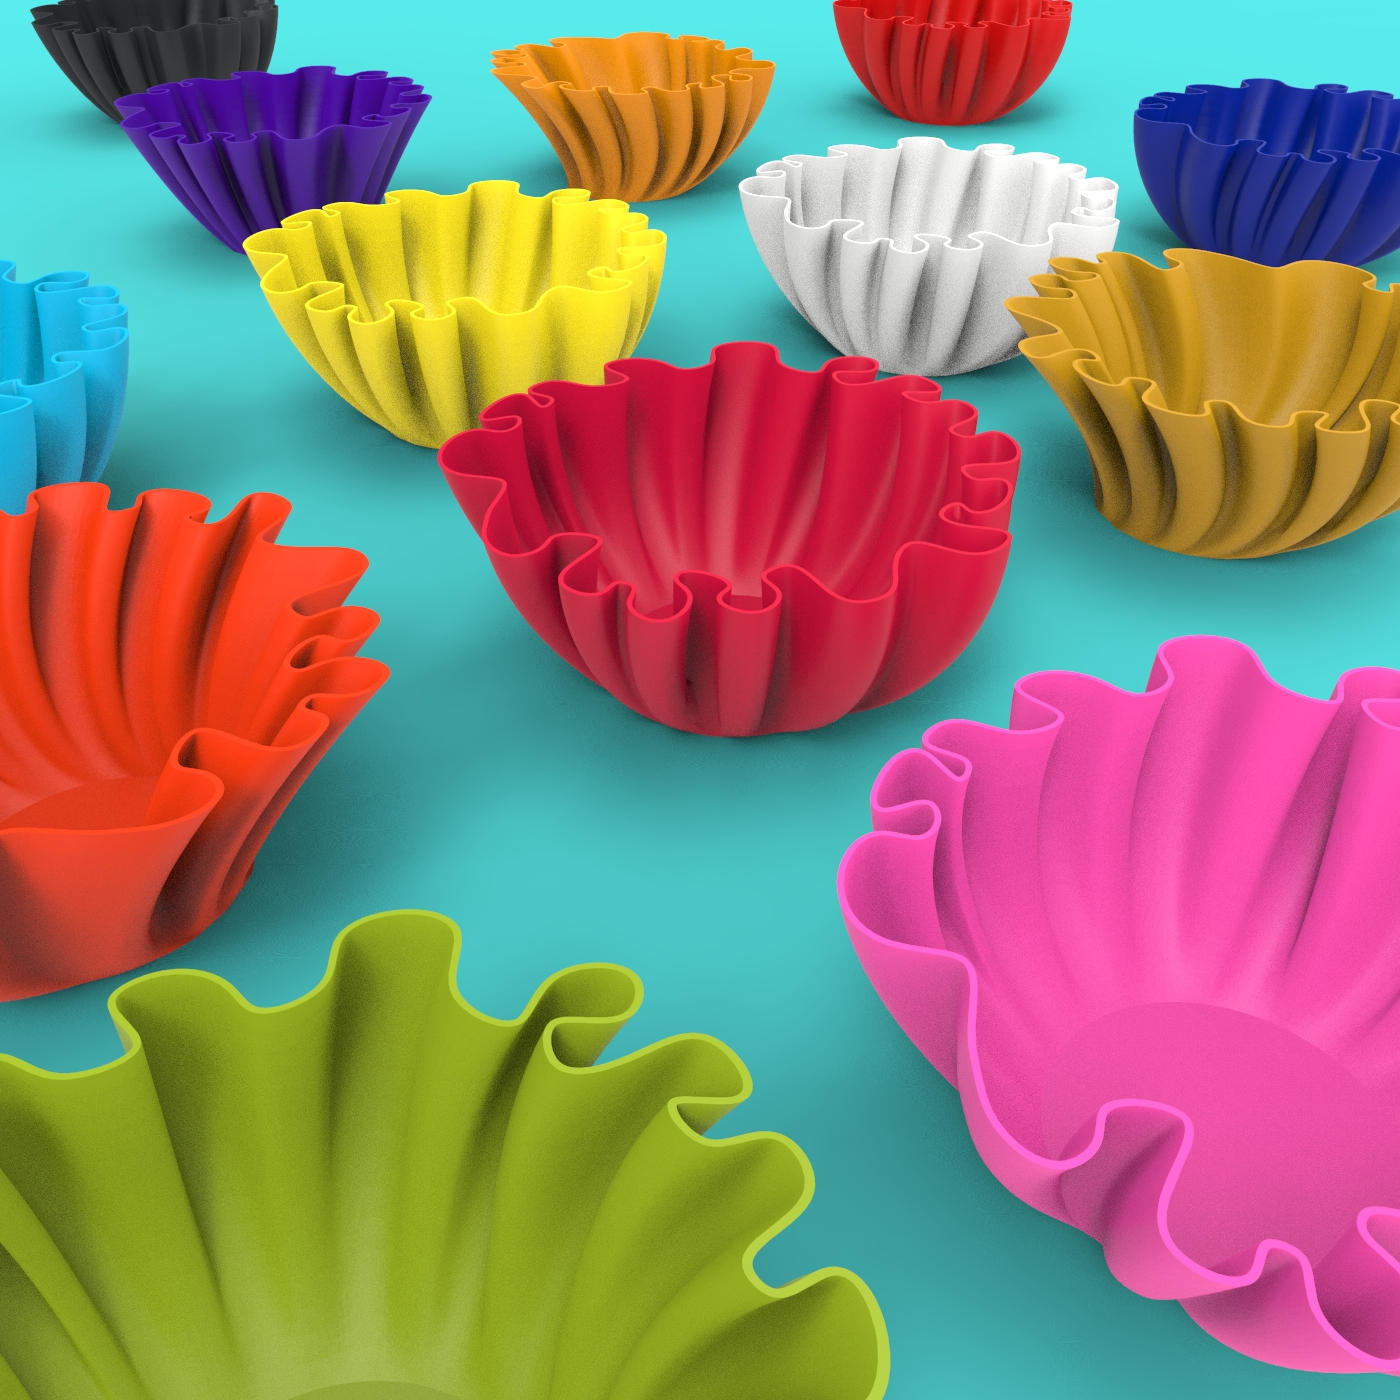 2.jpg Download free STL file Bowl/Floral Salad Bowl • 3D printing template, mayamaya08